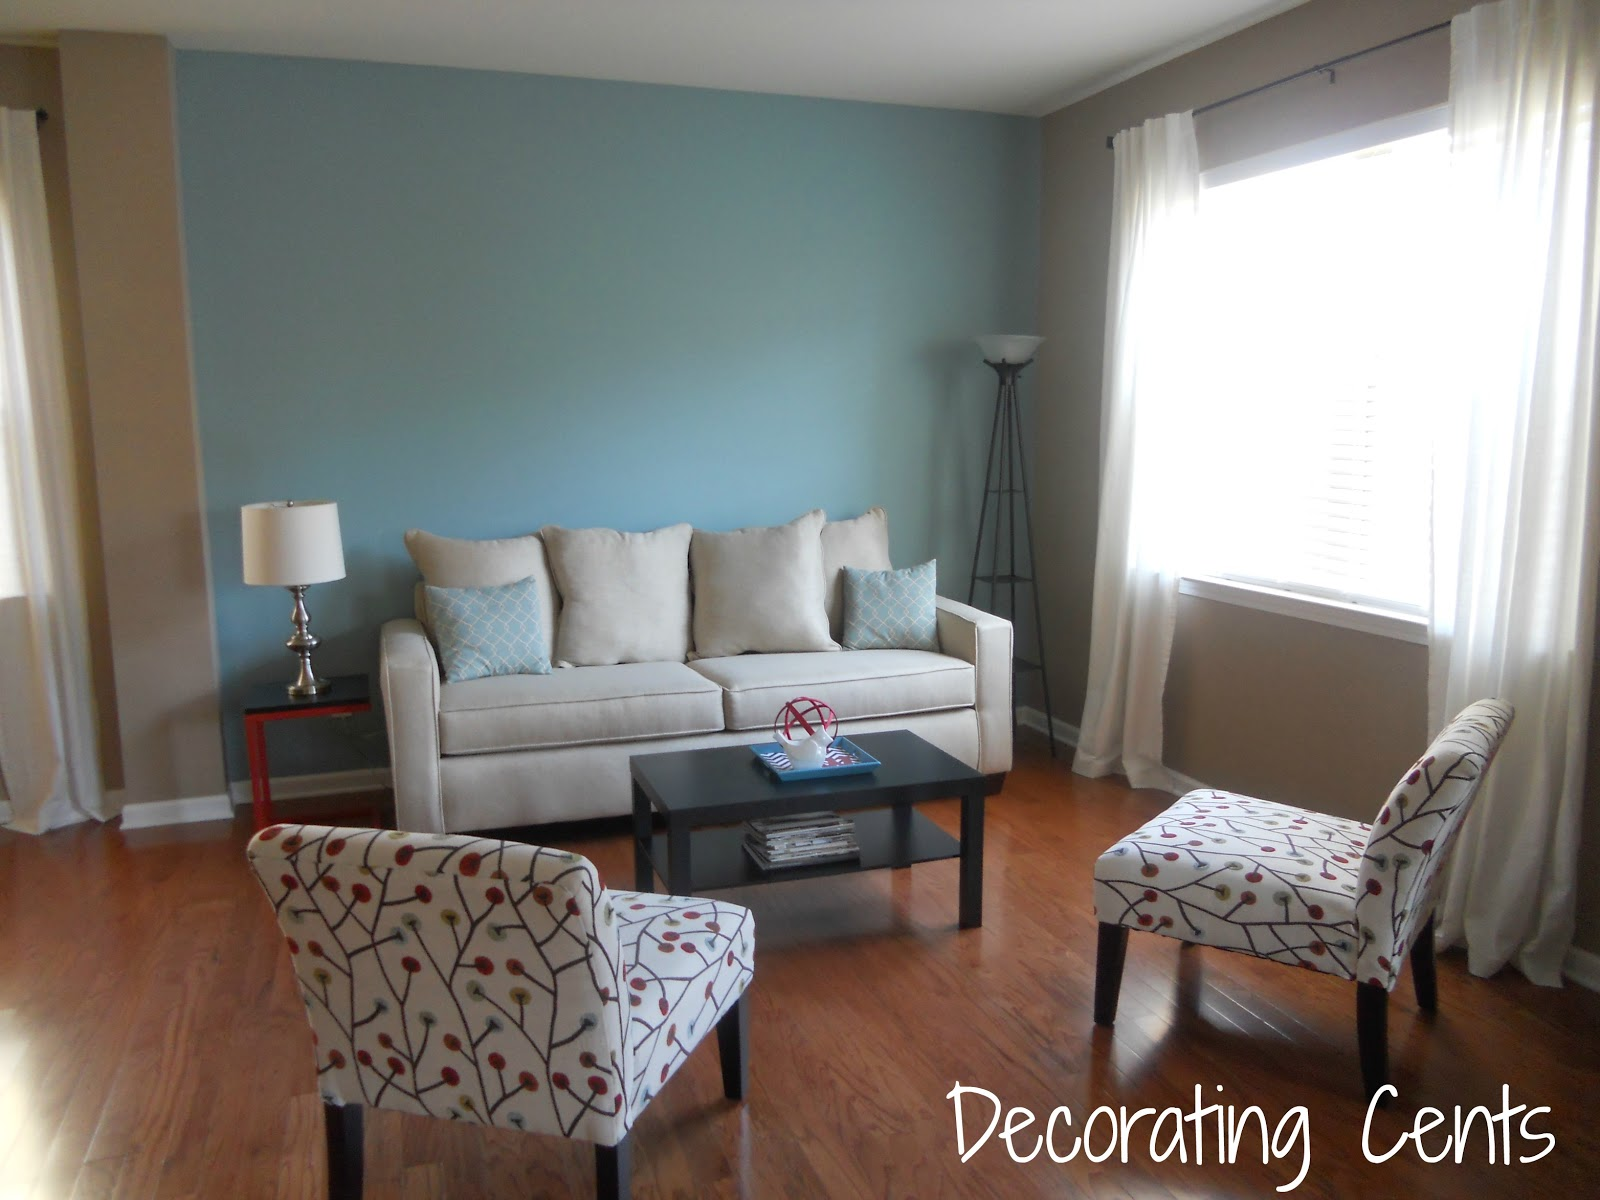 Decorating cents changing the background for Wall pictures for living room ireland